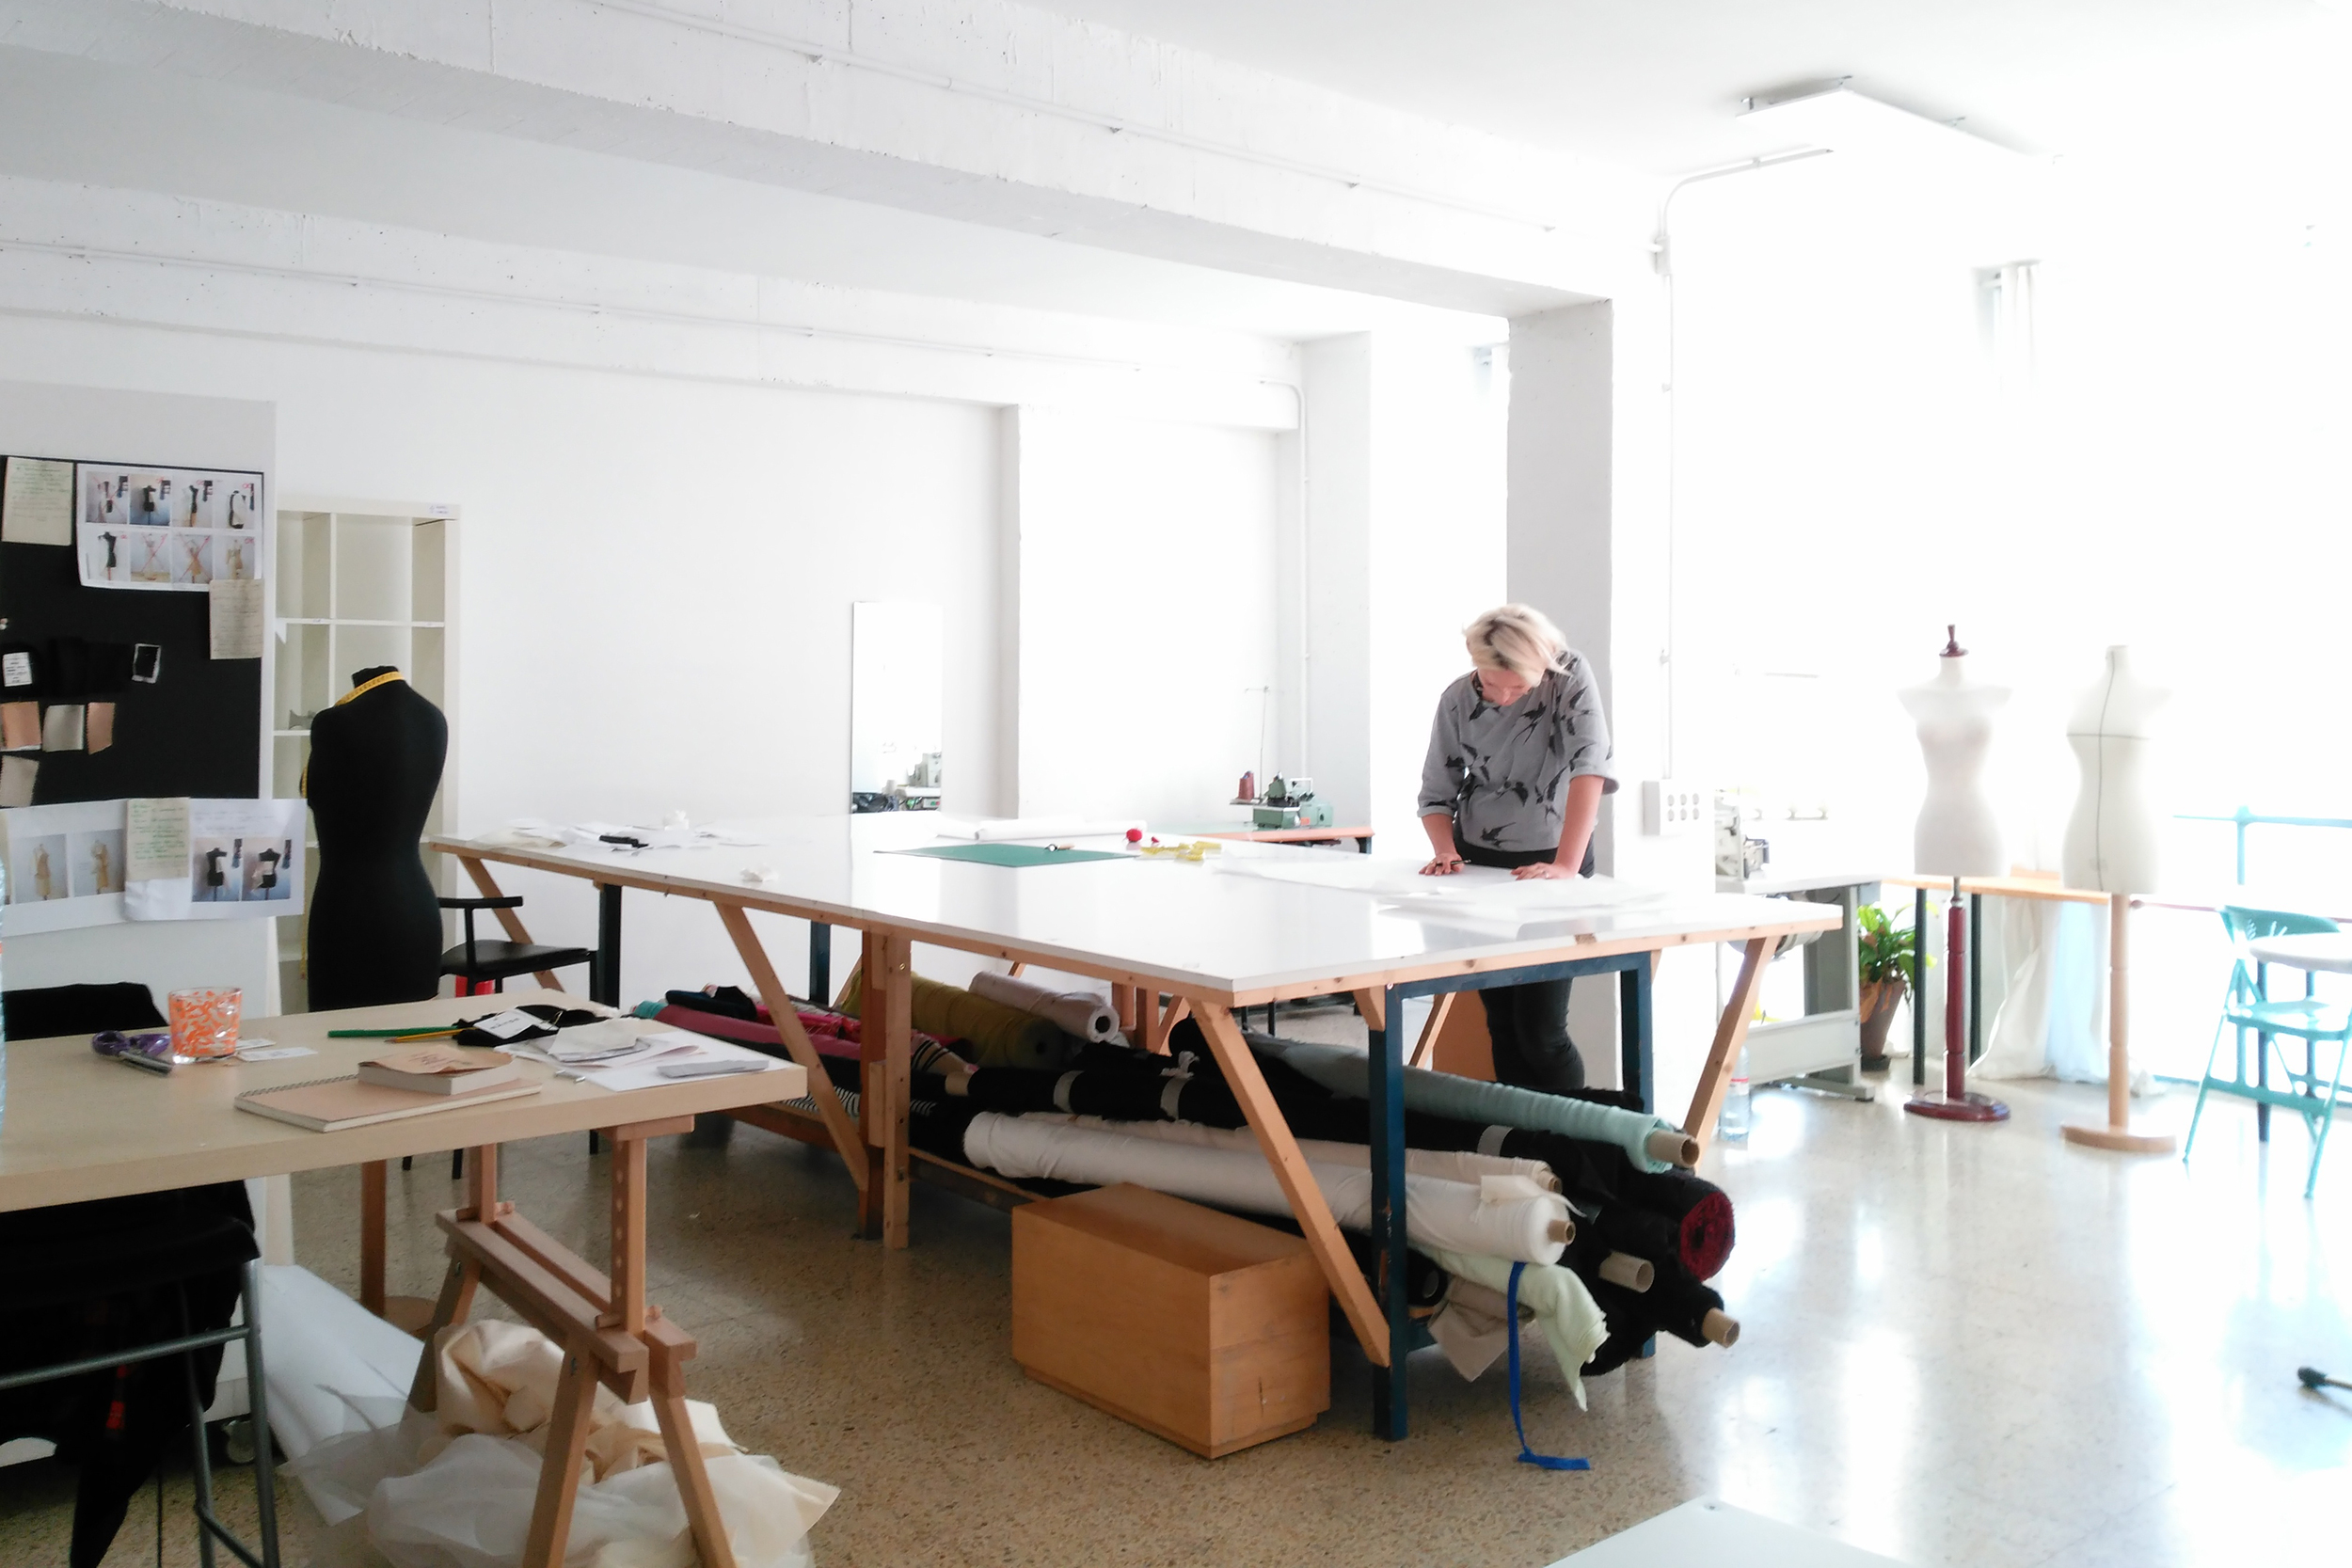 Large patternmaking table in the space